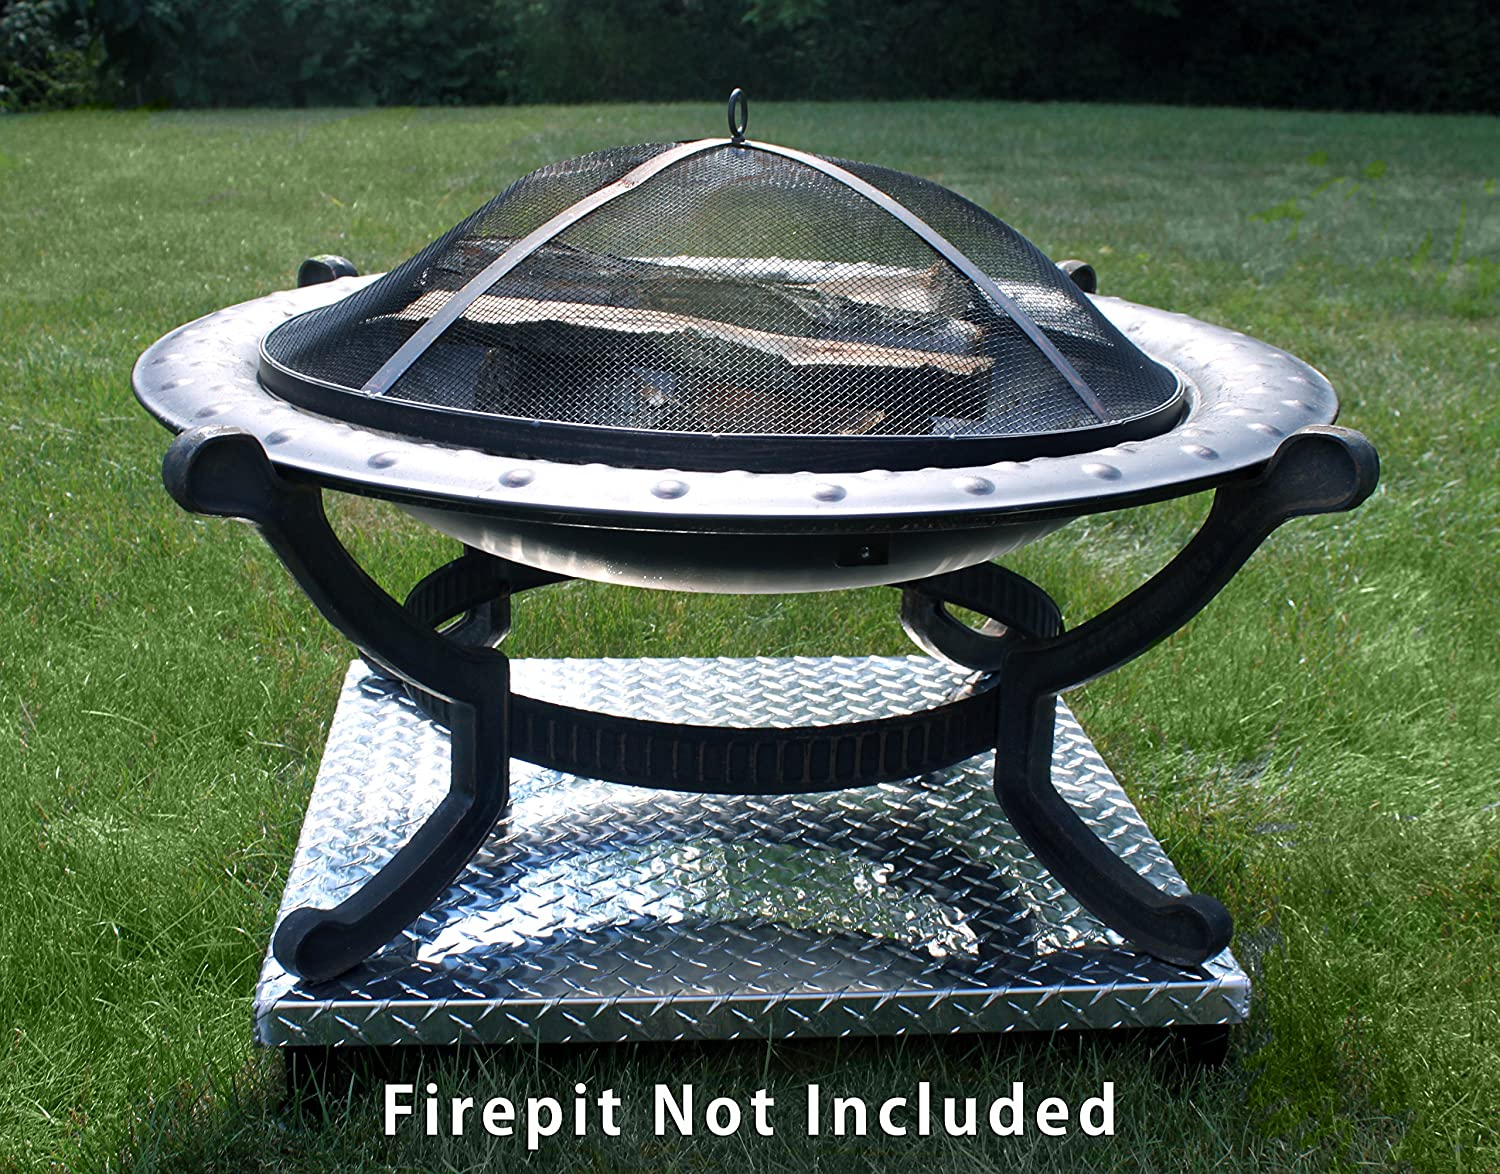 What To Put Under A Fire Pit On Grass Or Wooden Deck Outdoor Fire Pits Fireplaces Grills